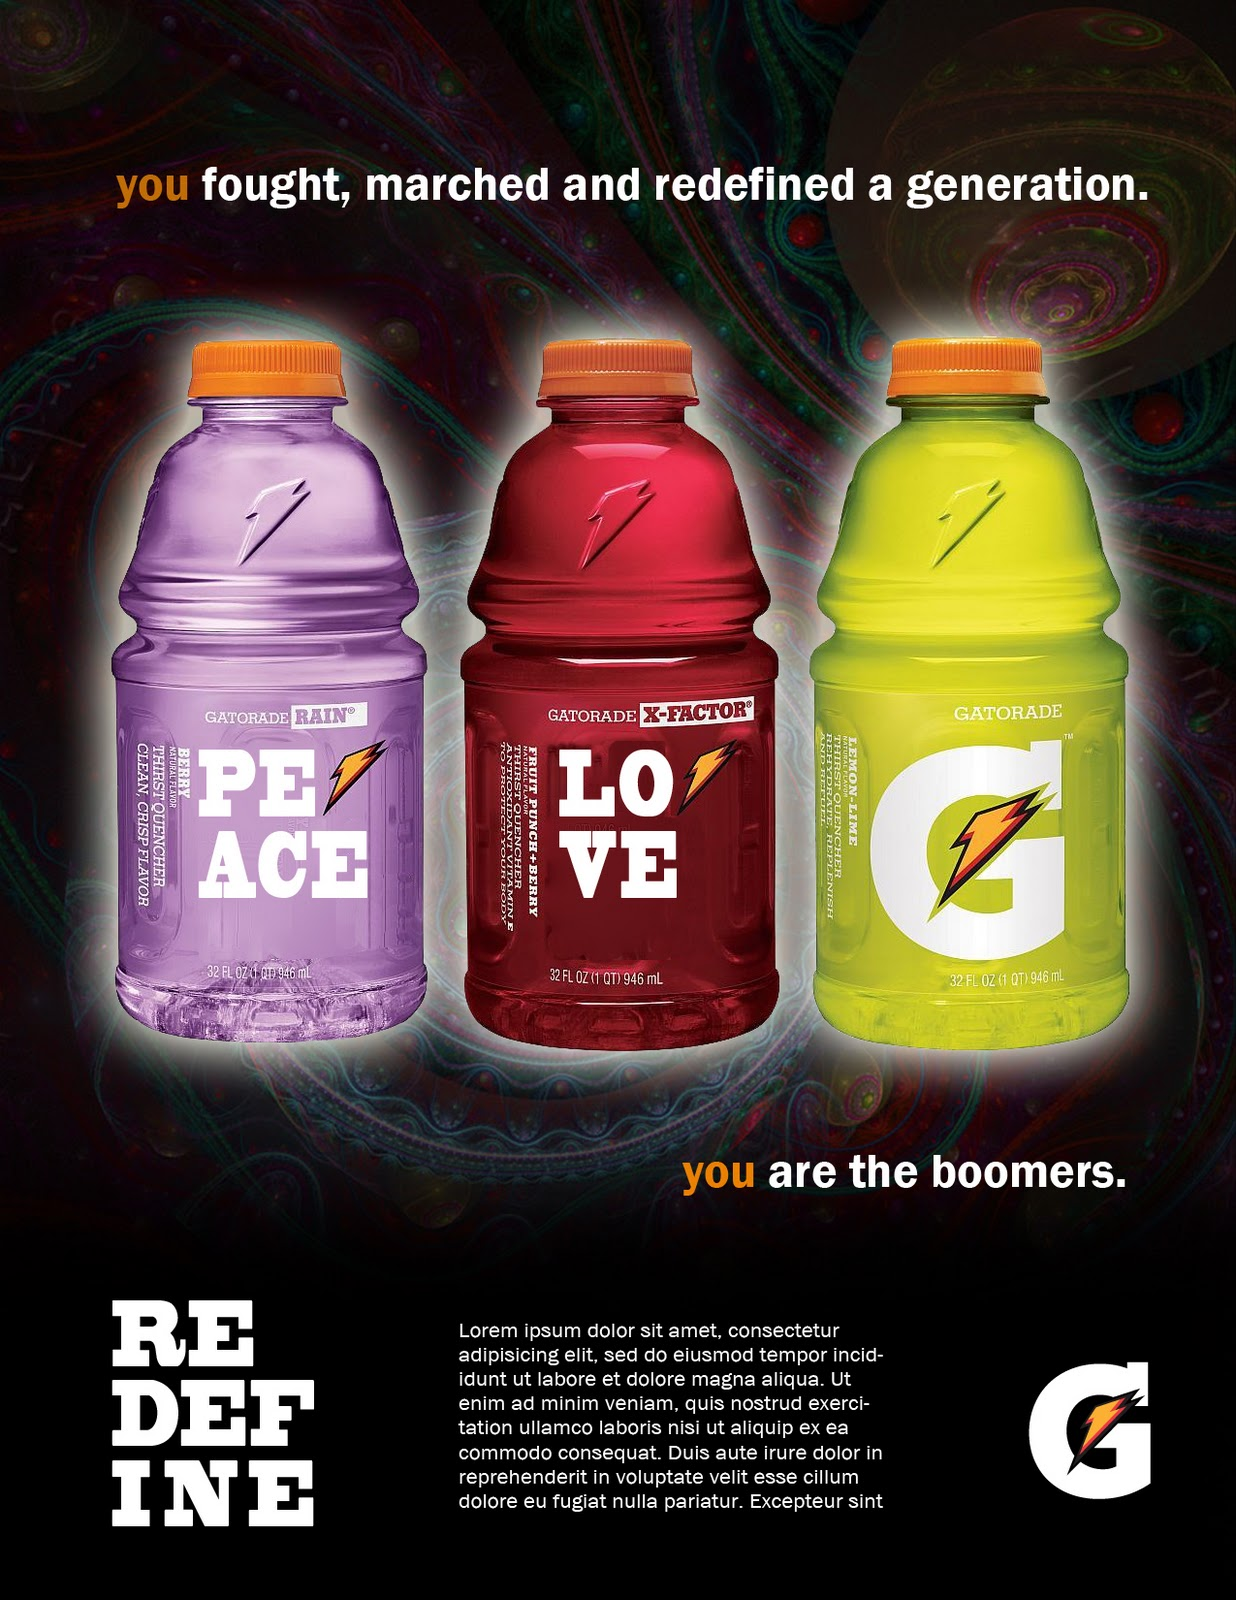 gatorade demographic